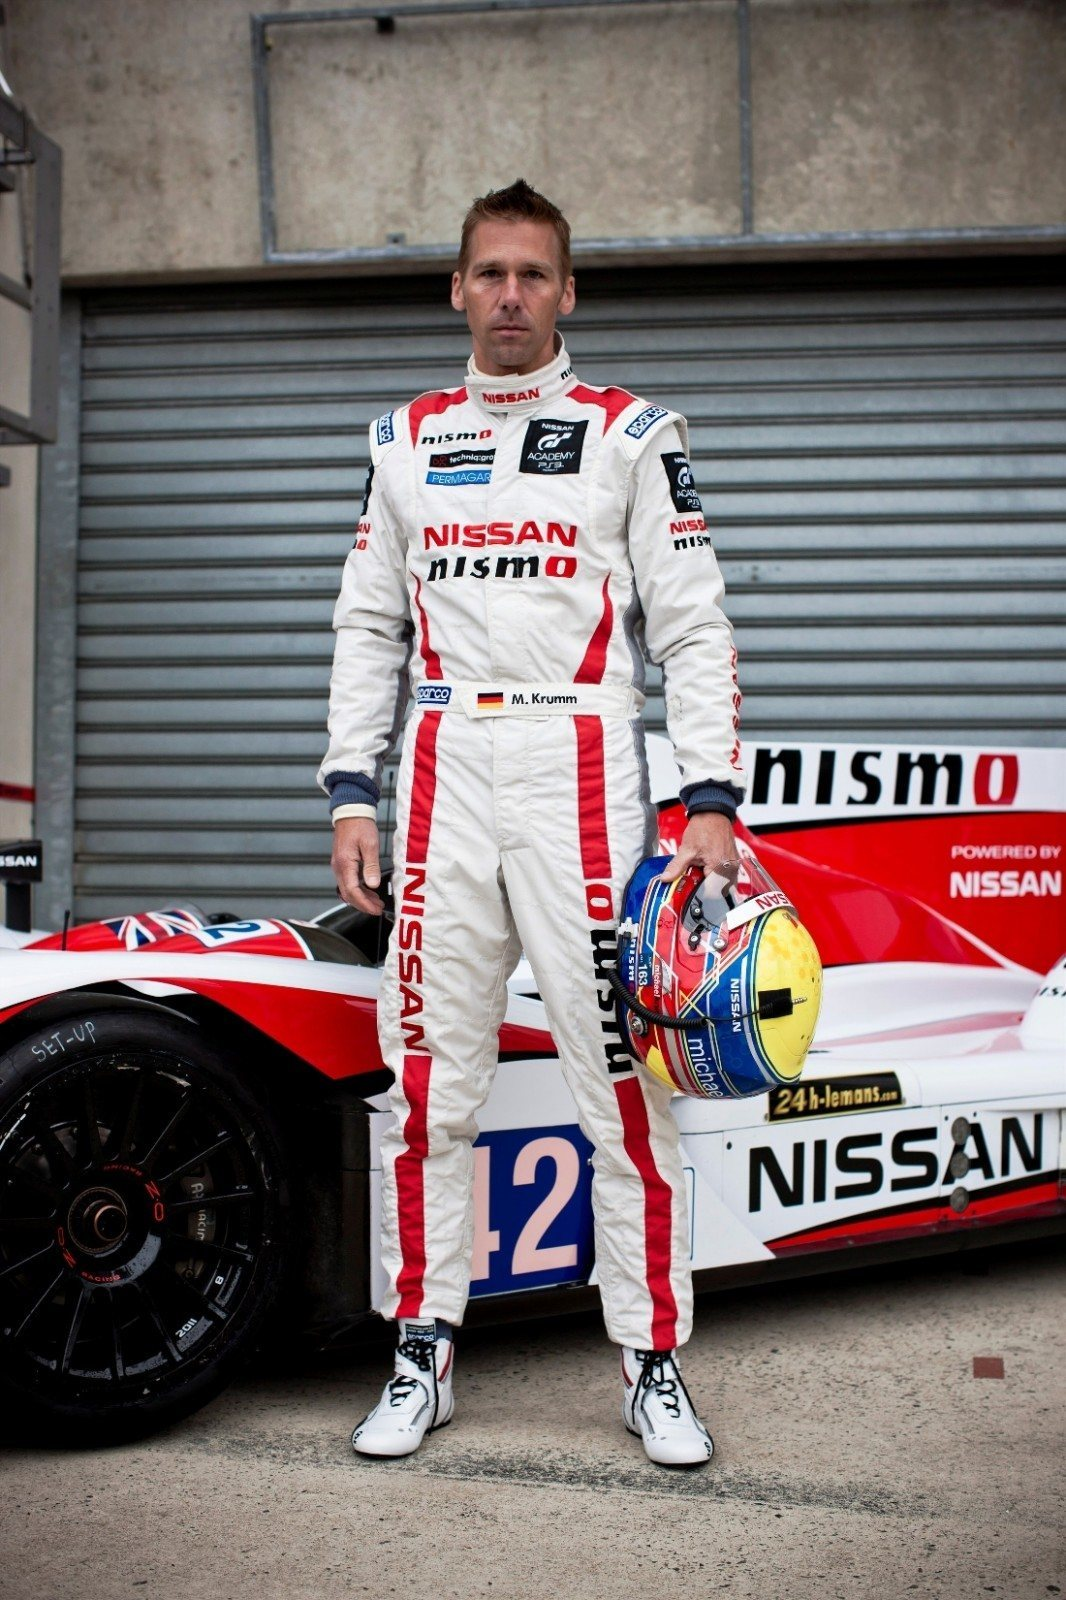 Nissan GT-R GT3 COnfirmed for 2014 Nurbugring 24H Race in June 11